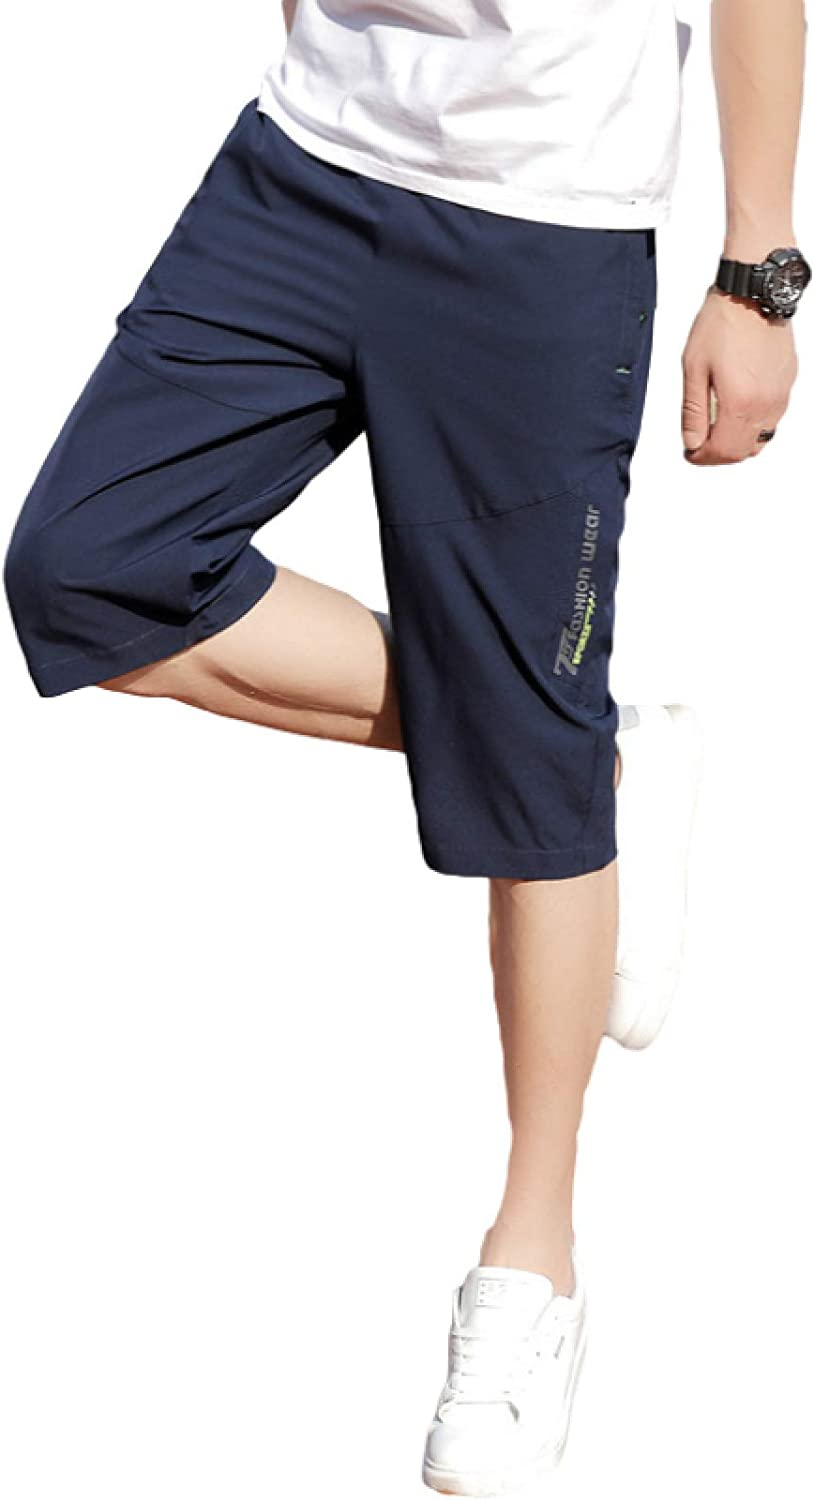 Segindy Men's Loose Fit Shorts Summer Fashion Large Size Casual Comfortable Elasticated